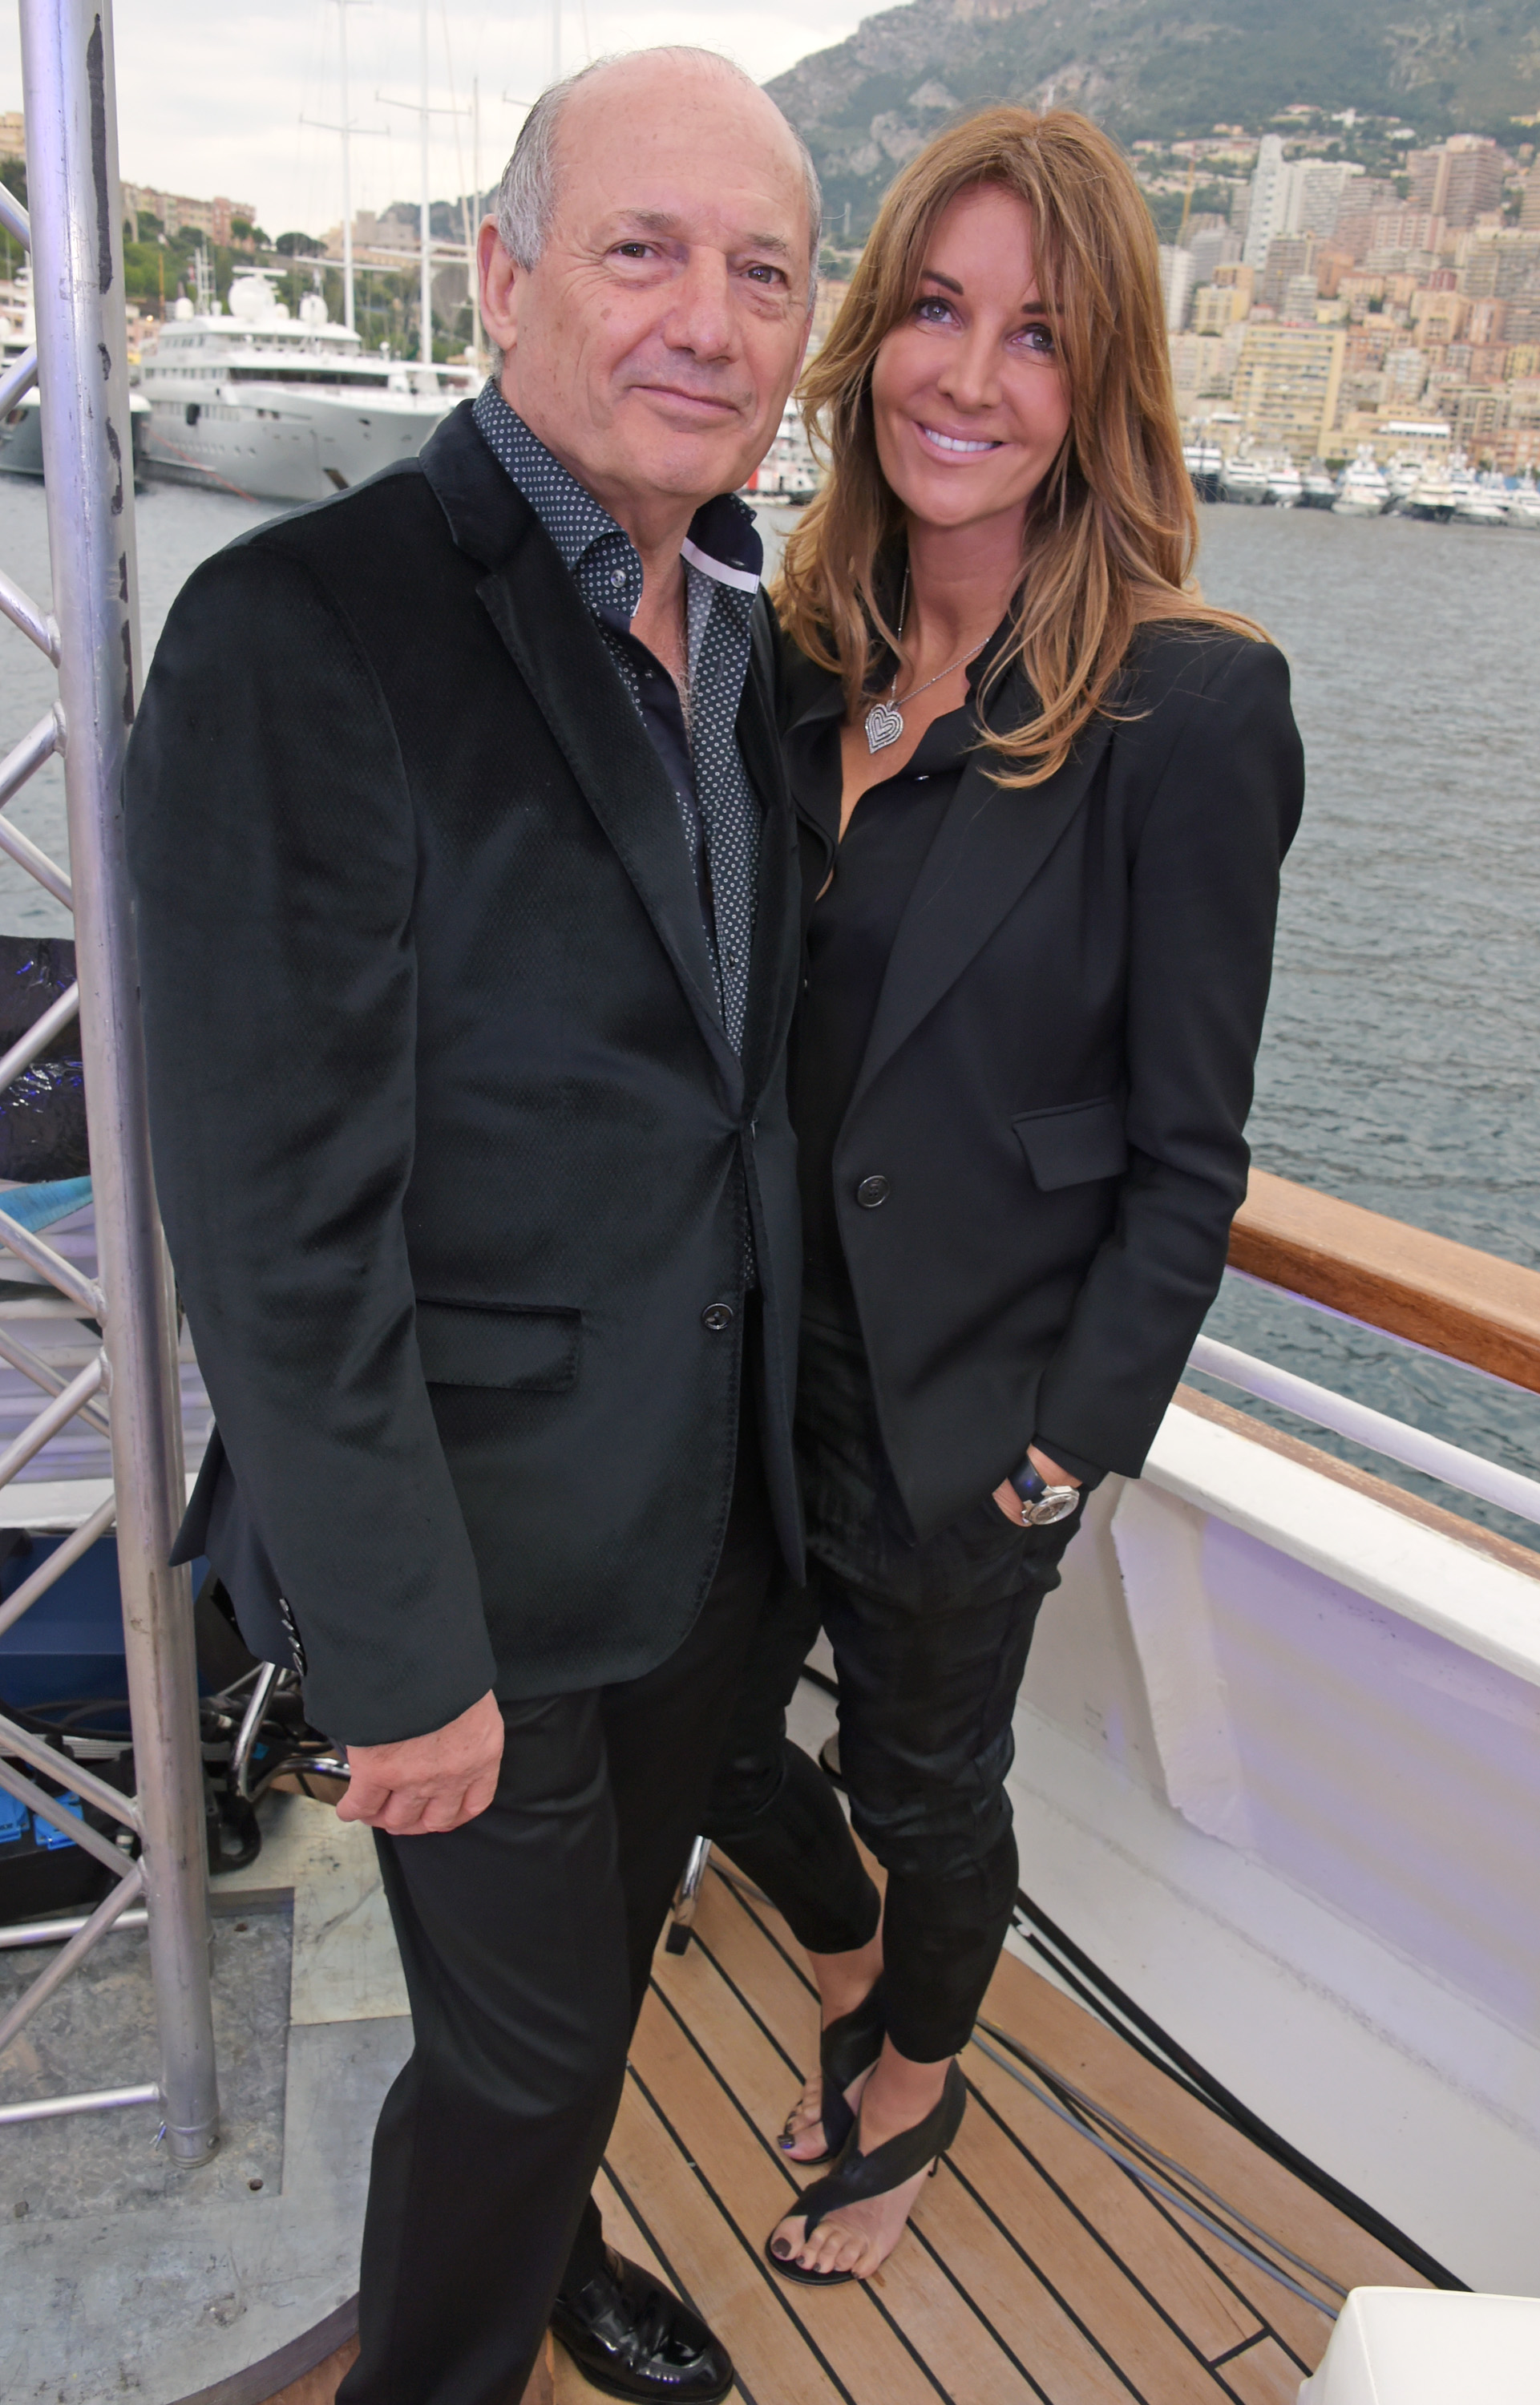 MONACO - MAY 23:  Ron Dennis (L) and Carol Weatherall attend the TAG Heuer Monaco Party on May 23, 2015 in Monaco, Monaco.  (Photo by David M. Benett/Getty Images for TAG Heuer) *** Local Caption *** Ron Dennis; Carol Weatherall